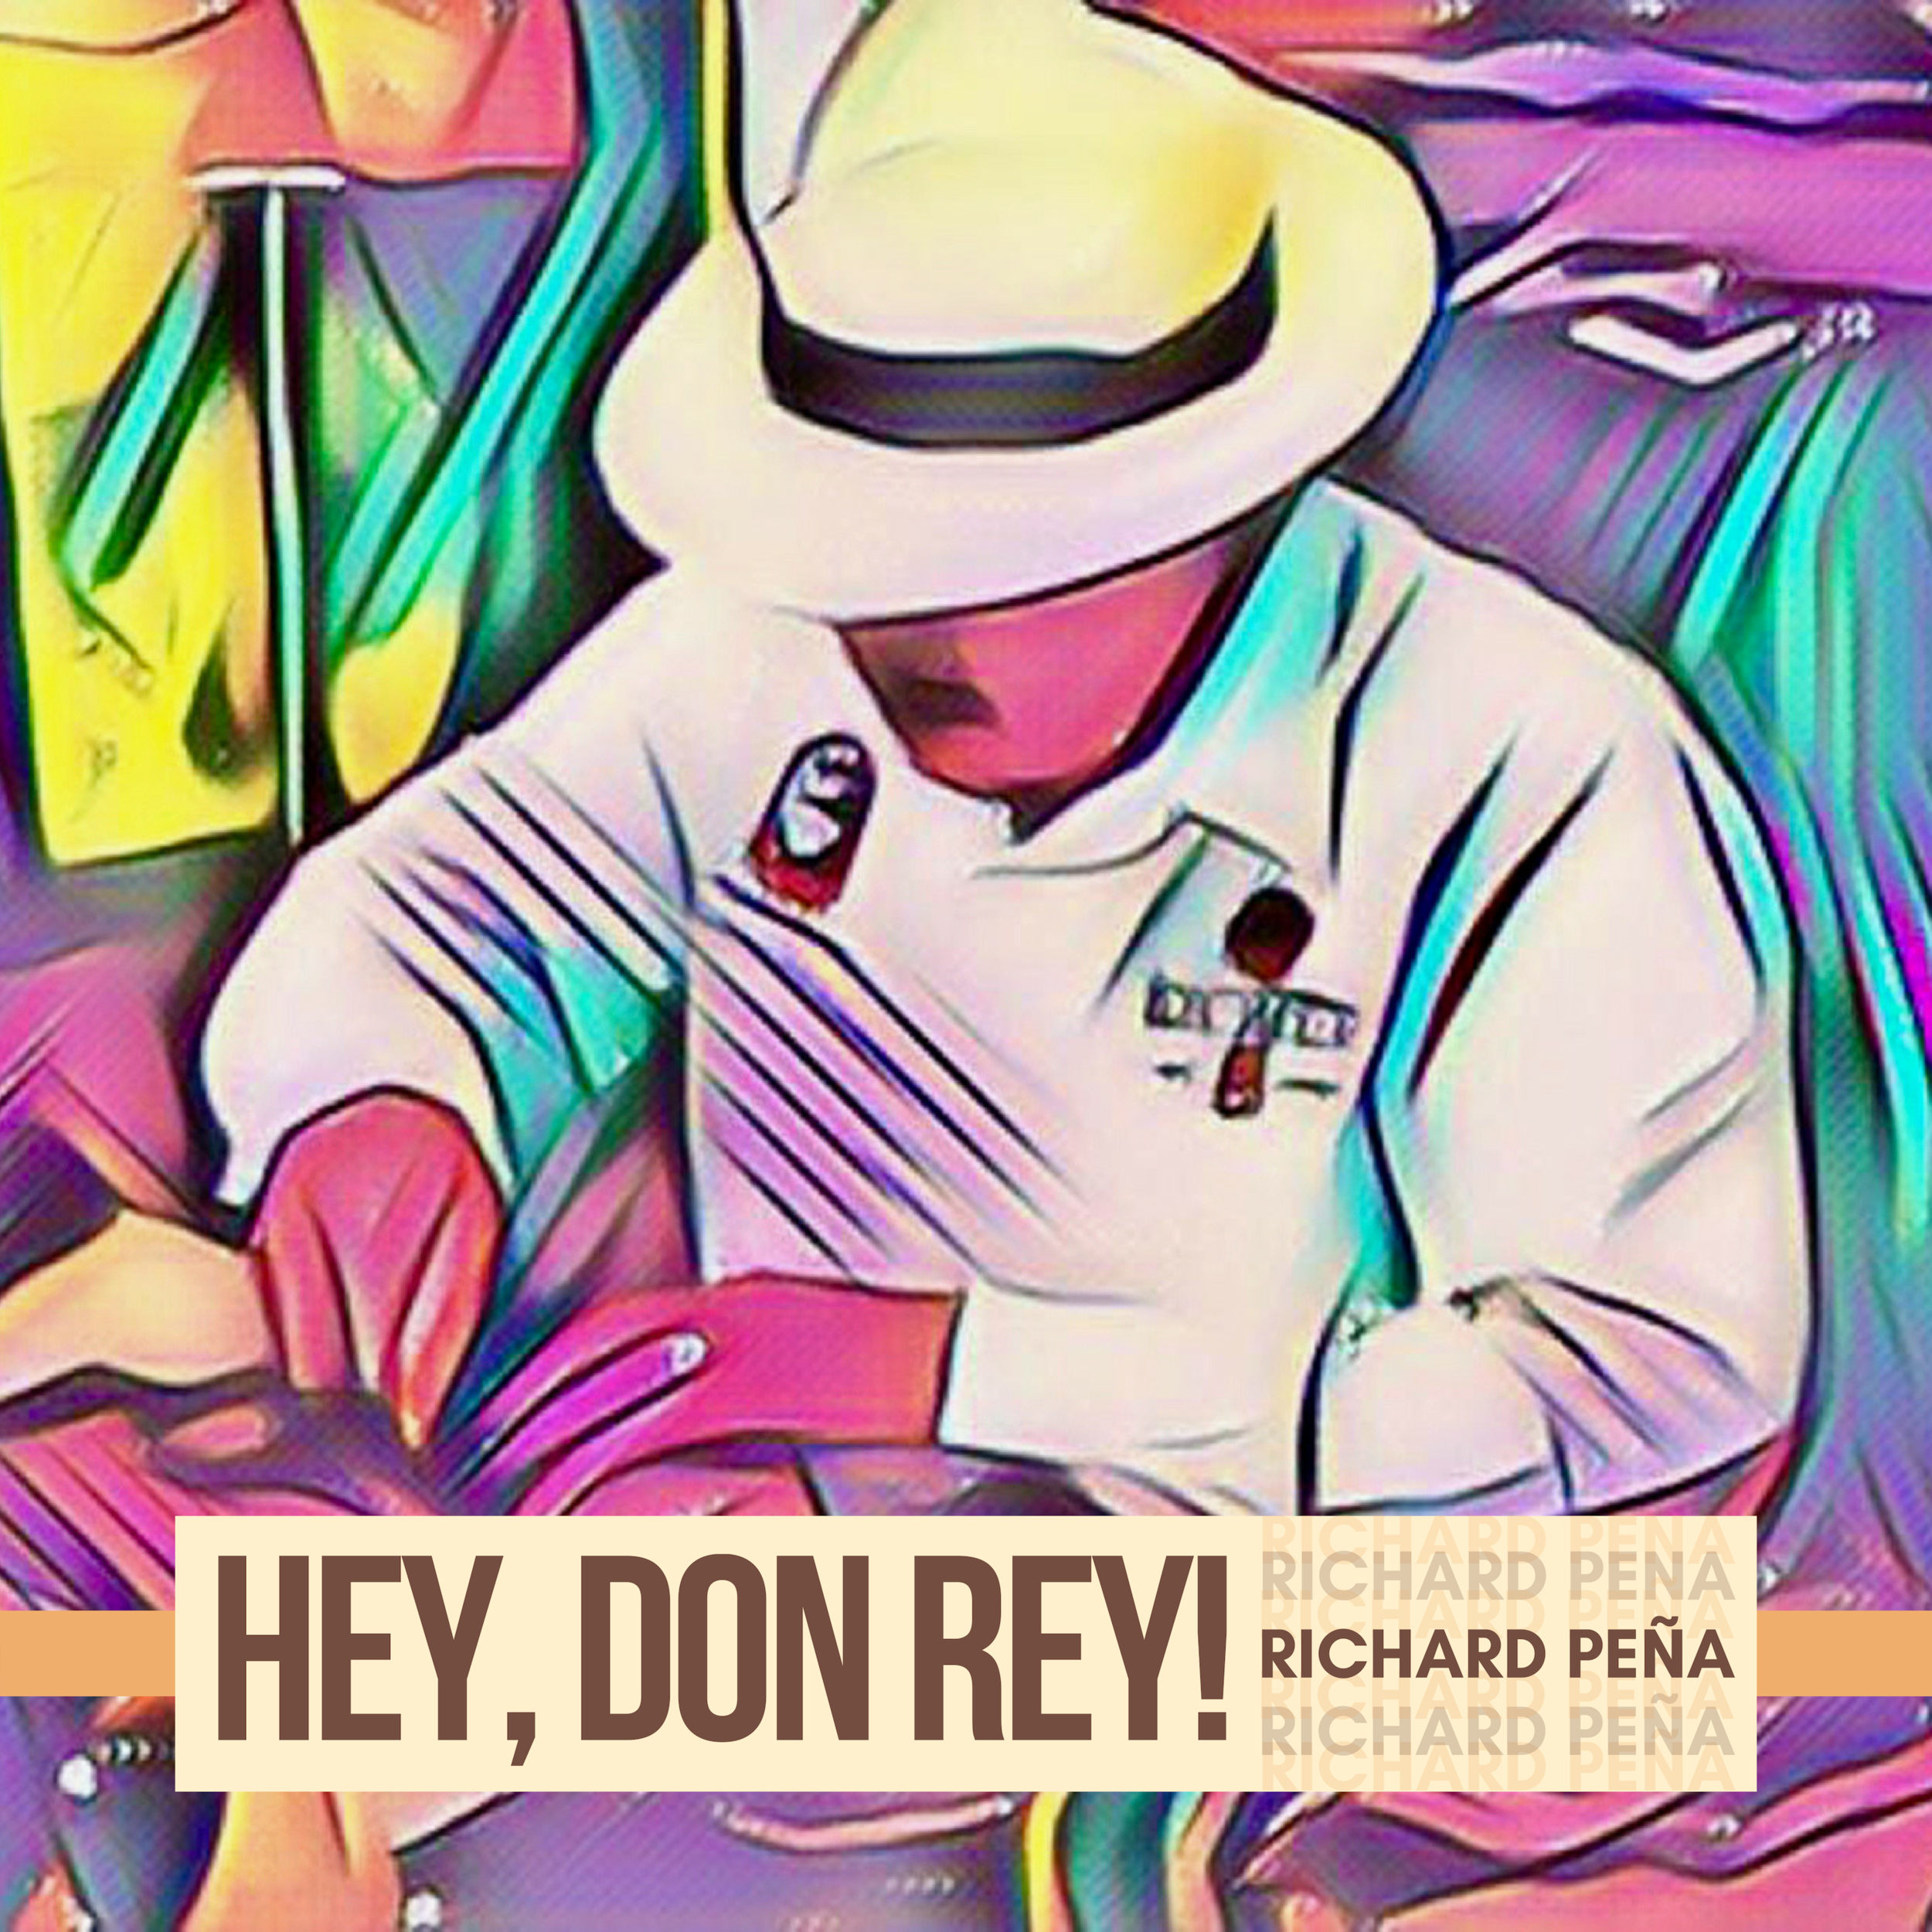 "Hey, Don Rey! (Album) - Dedicated to Richard's father, ""Hey, Don Rey!"" is a powerful view of the Latin side of jazz guitar. With an astonishing blend of the traditional sounds of Latin music, the modern colors of post-bop/fusion jazz and the warm sound of the guitar, Peña delivers a refreshing pallet of melodic and harmonic ideas that renews the role of the guitar in the tradition of Latin Jazz."